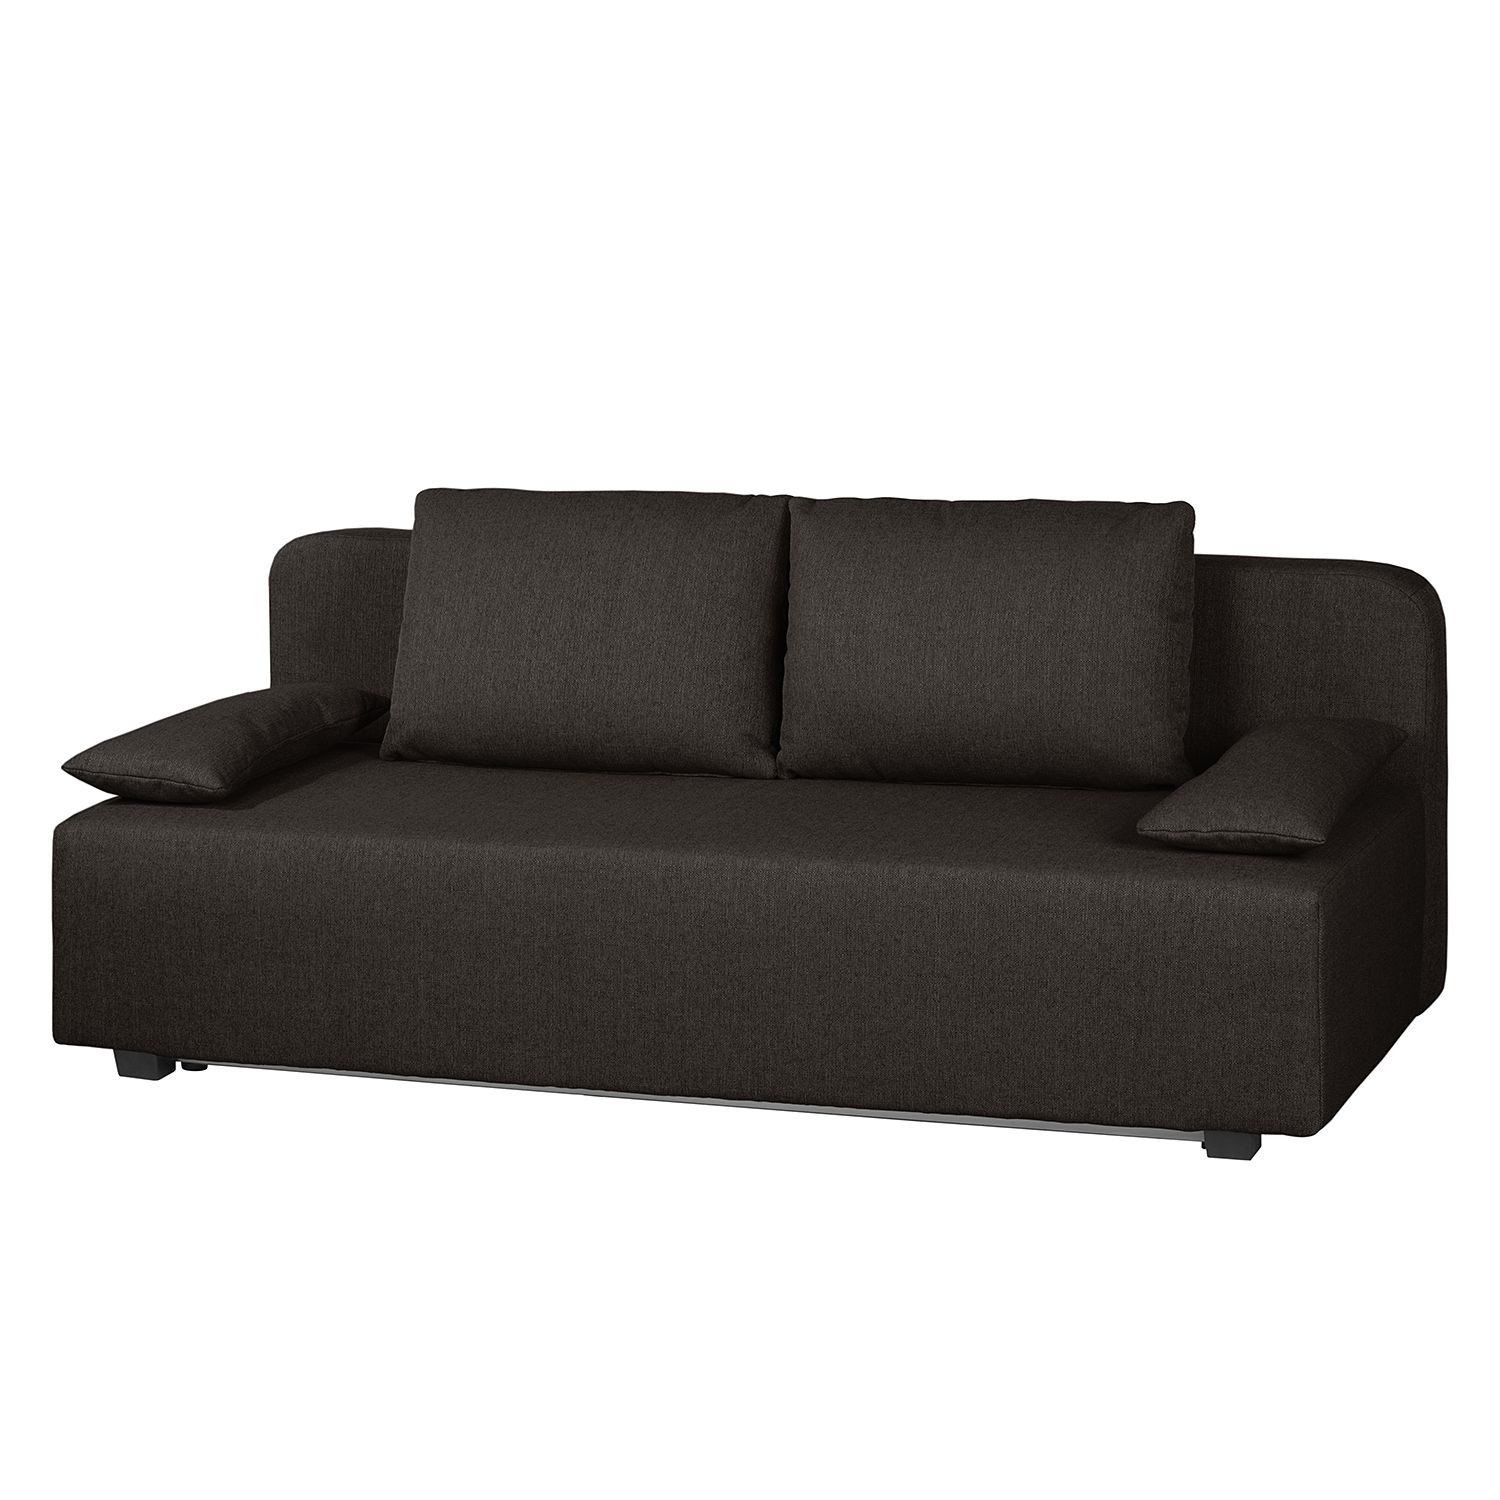 schlafsofa 140 breit es geht um idee design. Black Bedroom Furniture Sets. Home Design Ideas